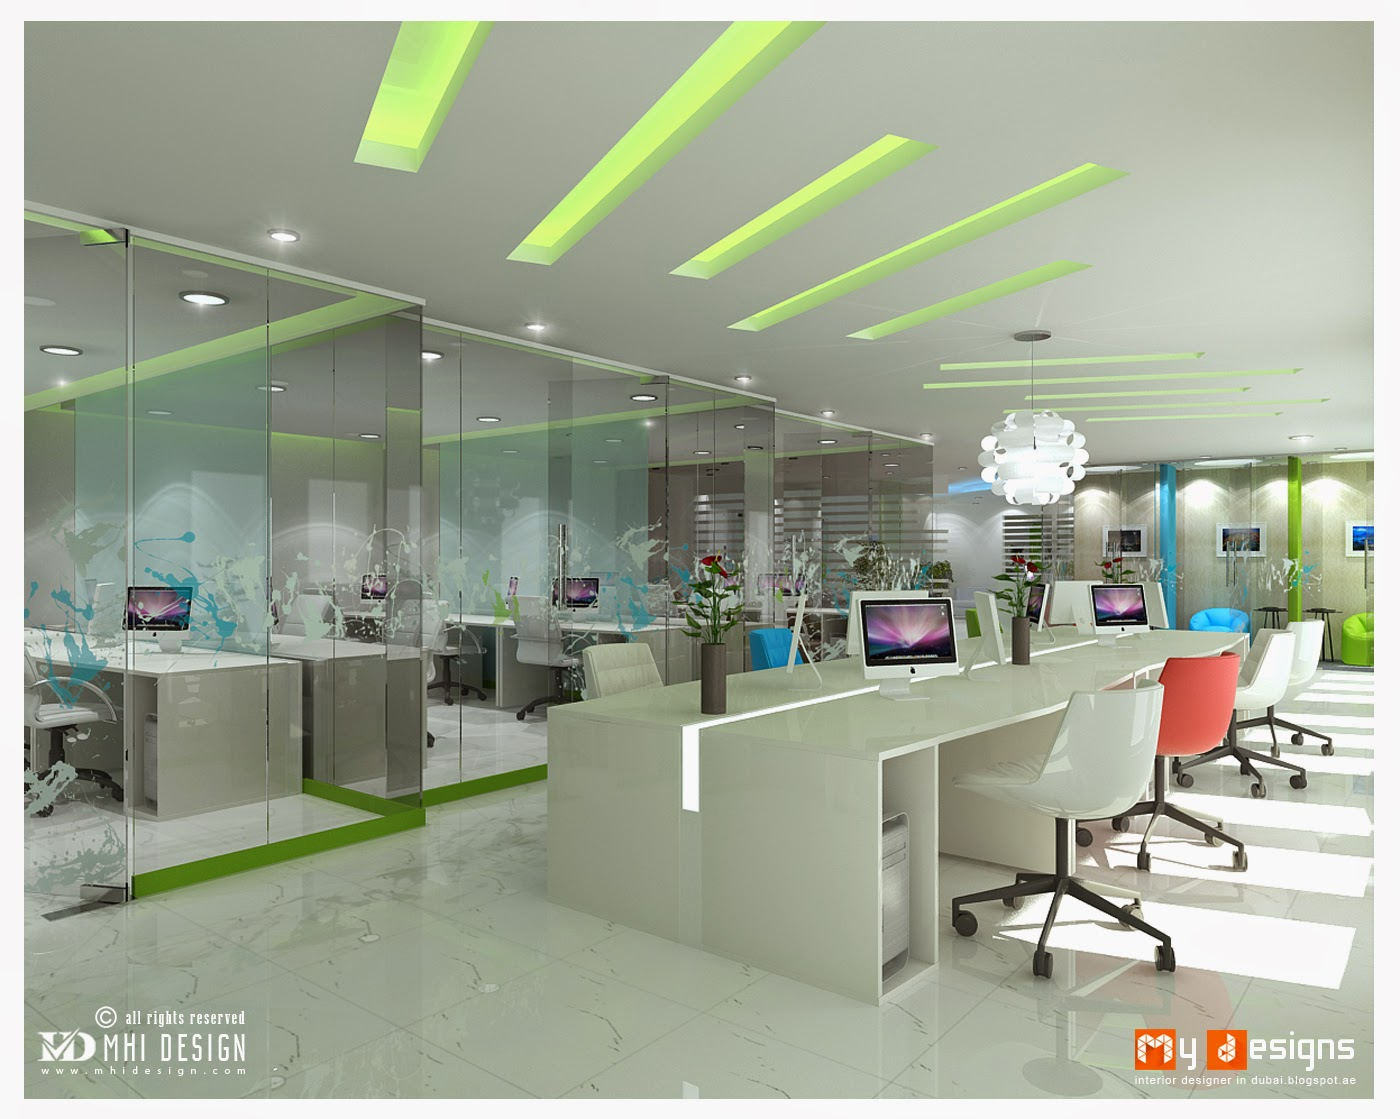 Interior Designing Company For Office And Home In Dubai Uae